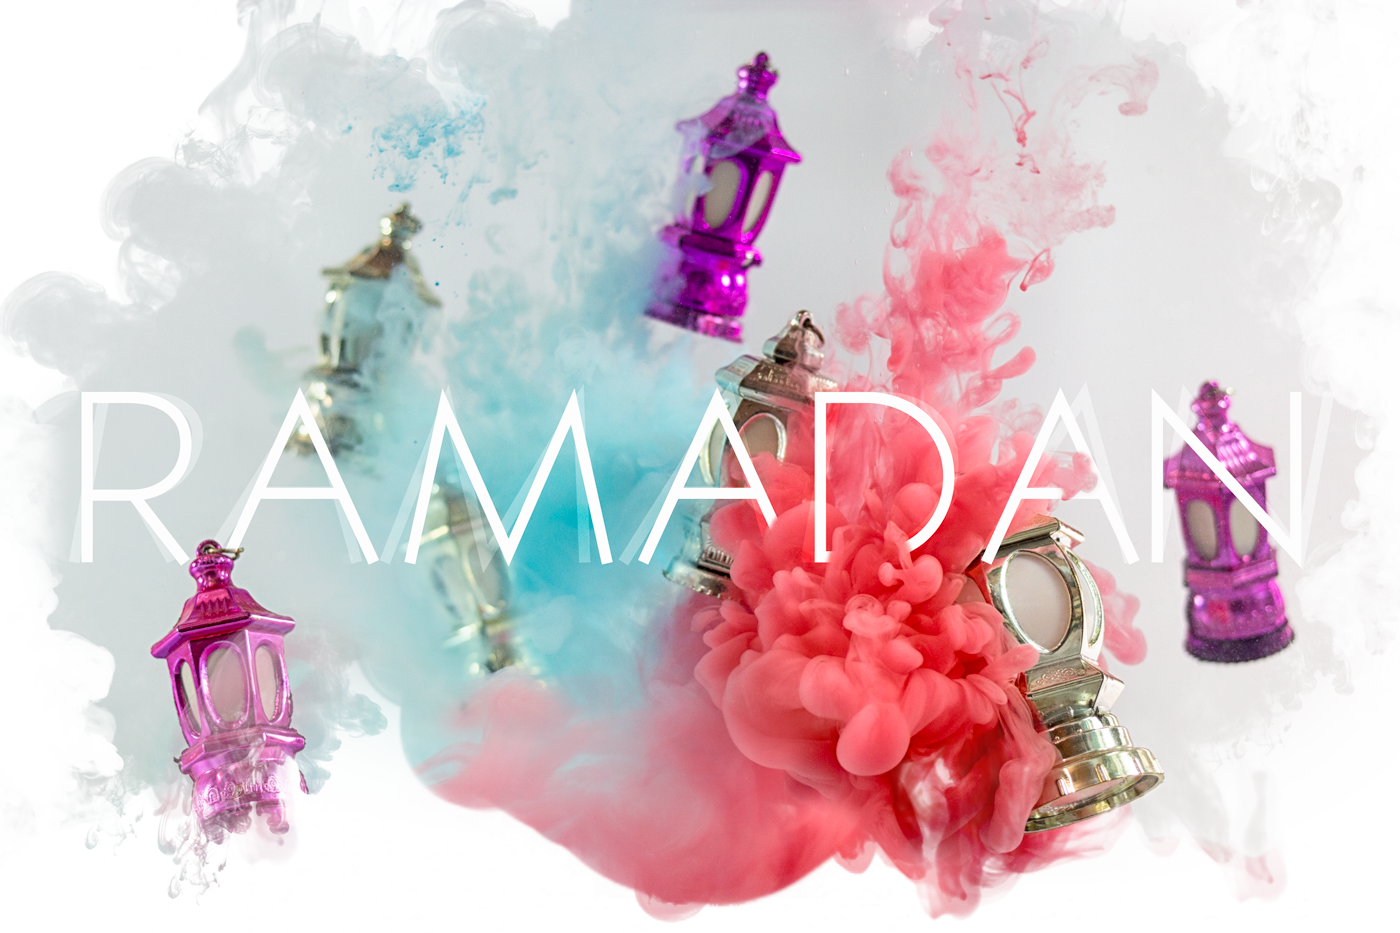 Tableau Musulman Moderne Colors Of Ramadan By Amr Elshamy Design Ideas